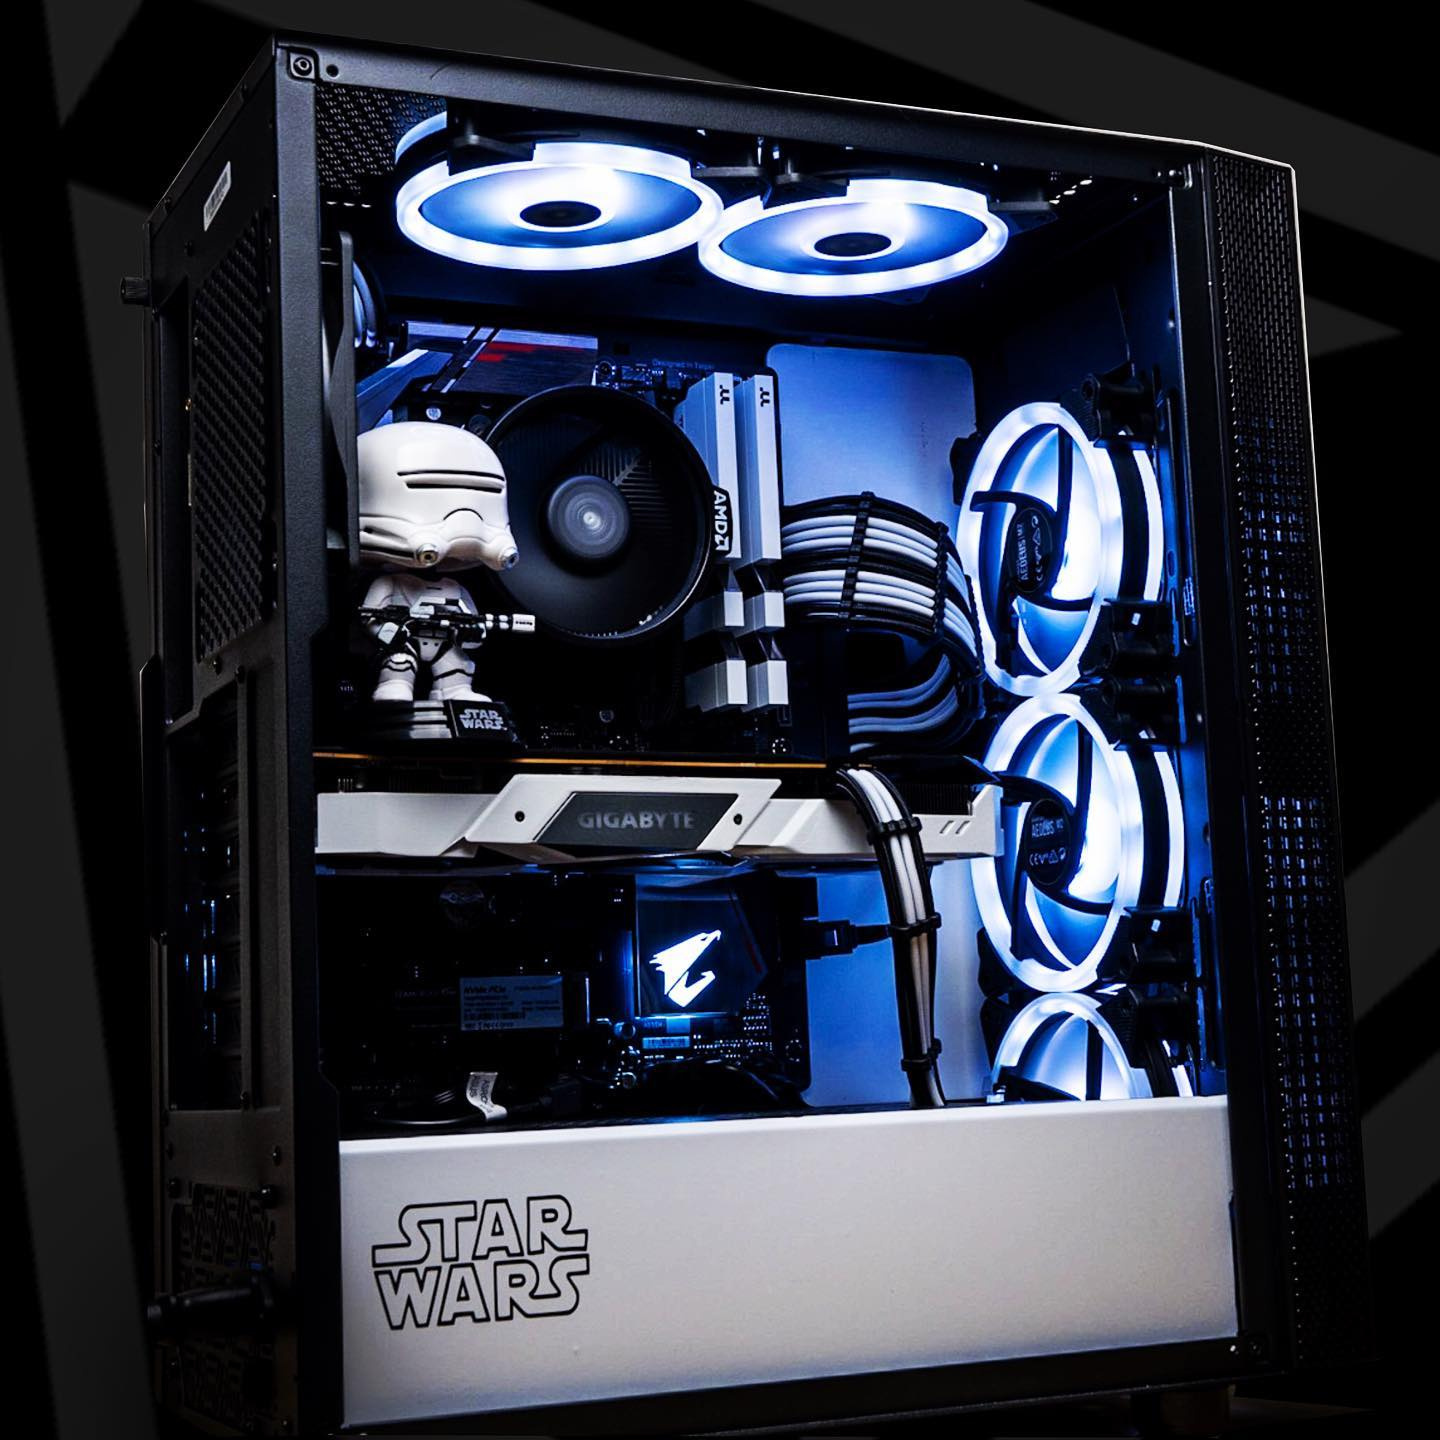 """The Death Star plans are not in the main computer"" Get that Star Wars Vibe into your main rig! ~~~~~~~~~~~~~~~~~..."